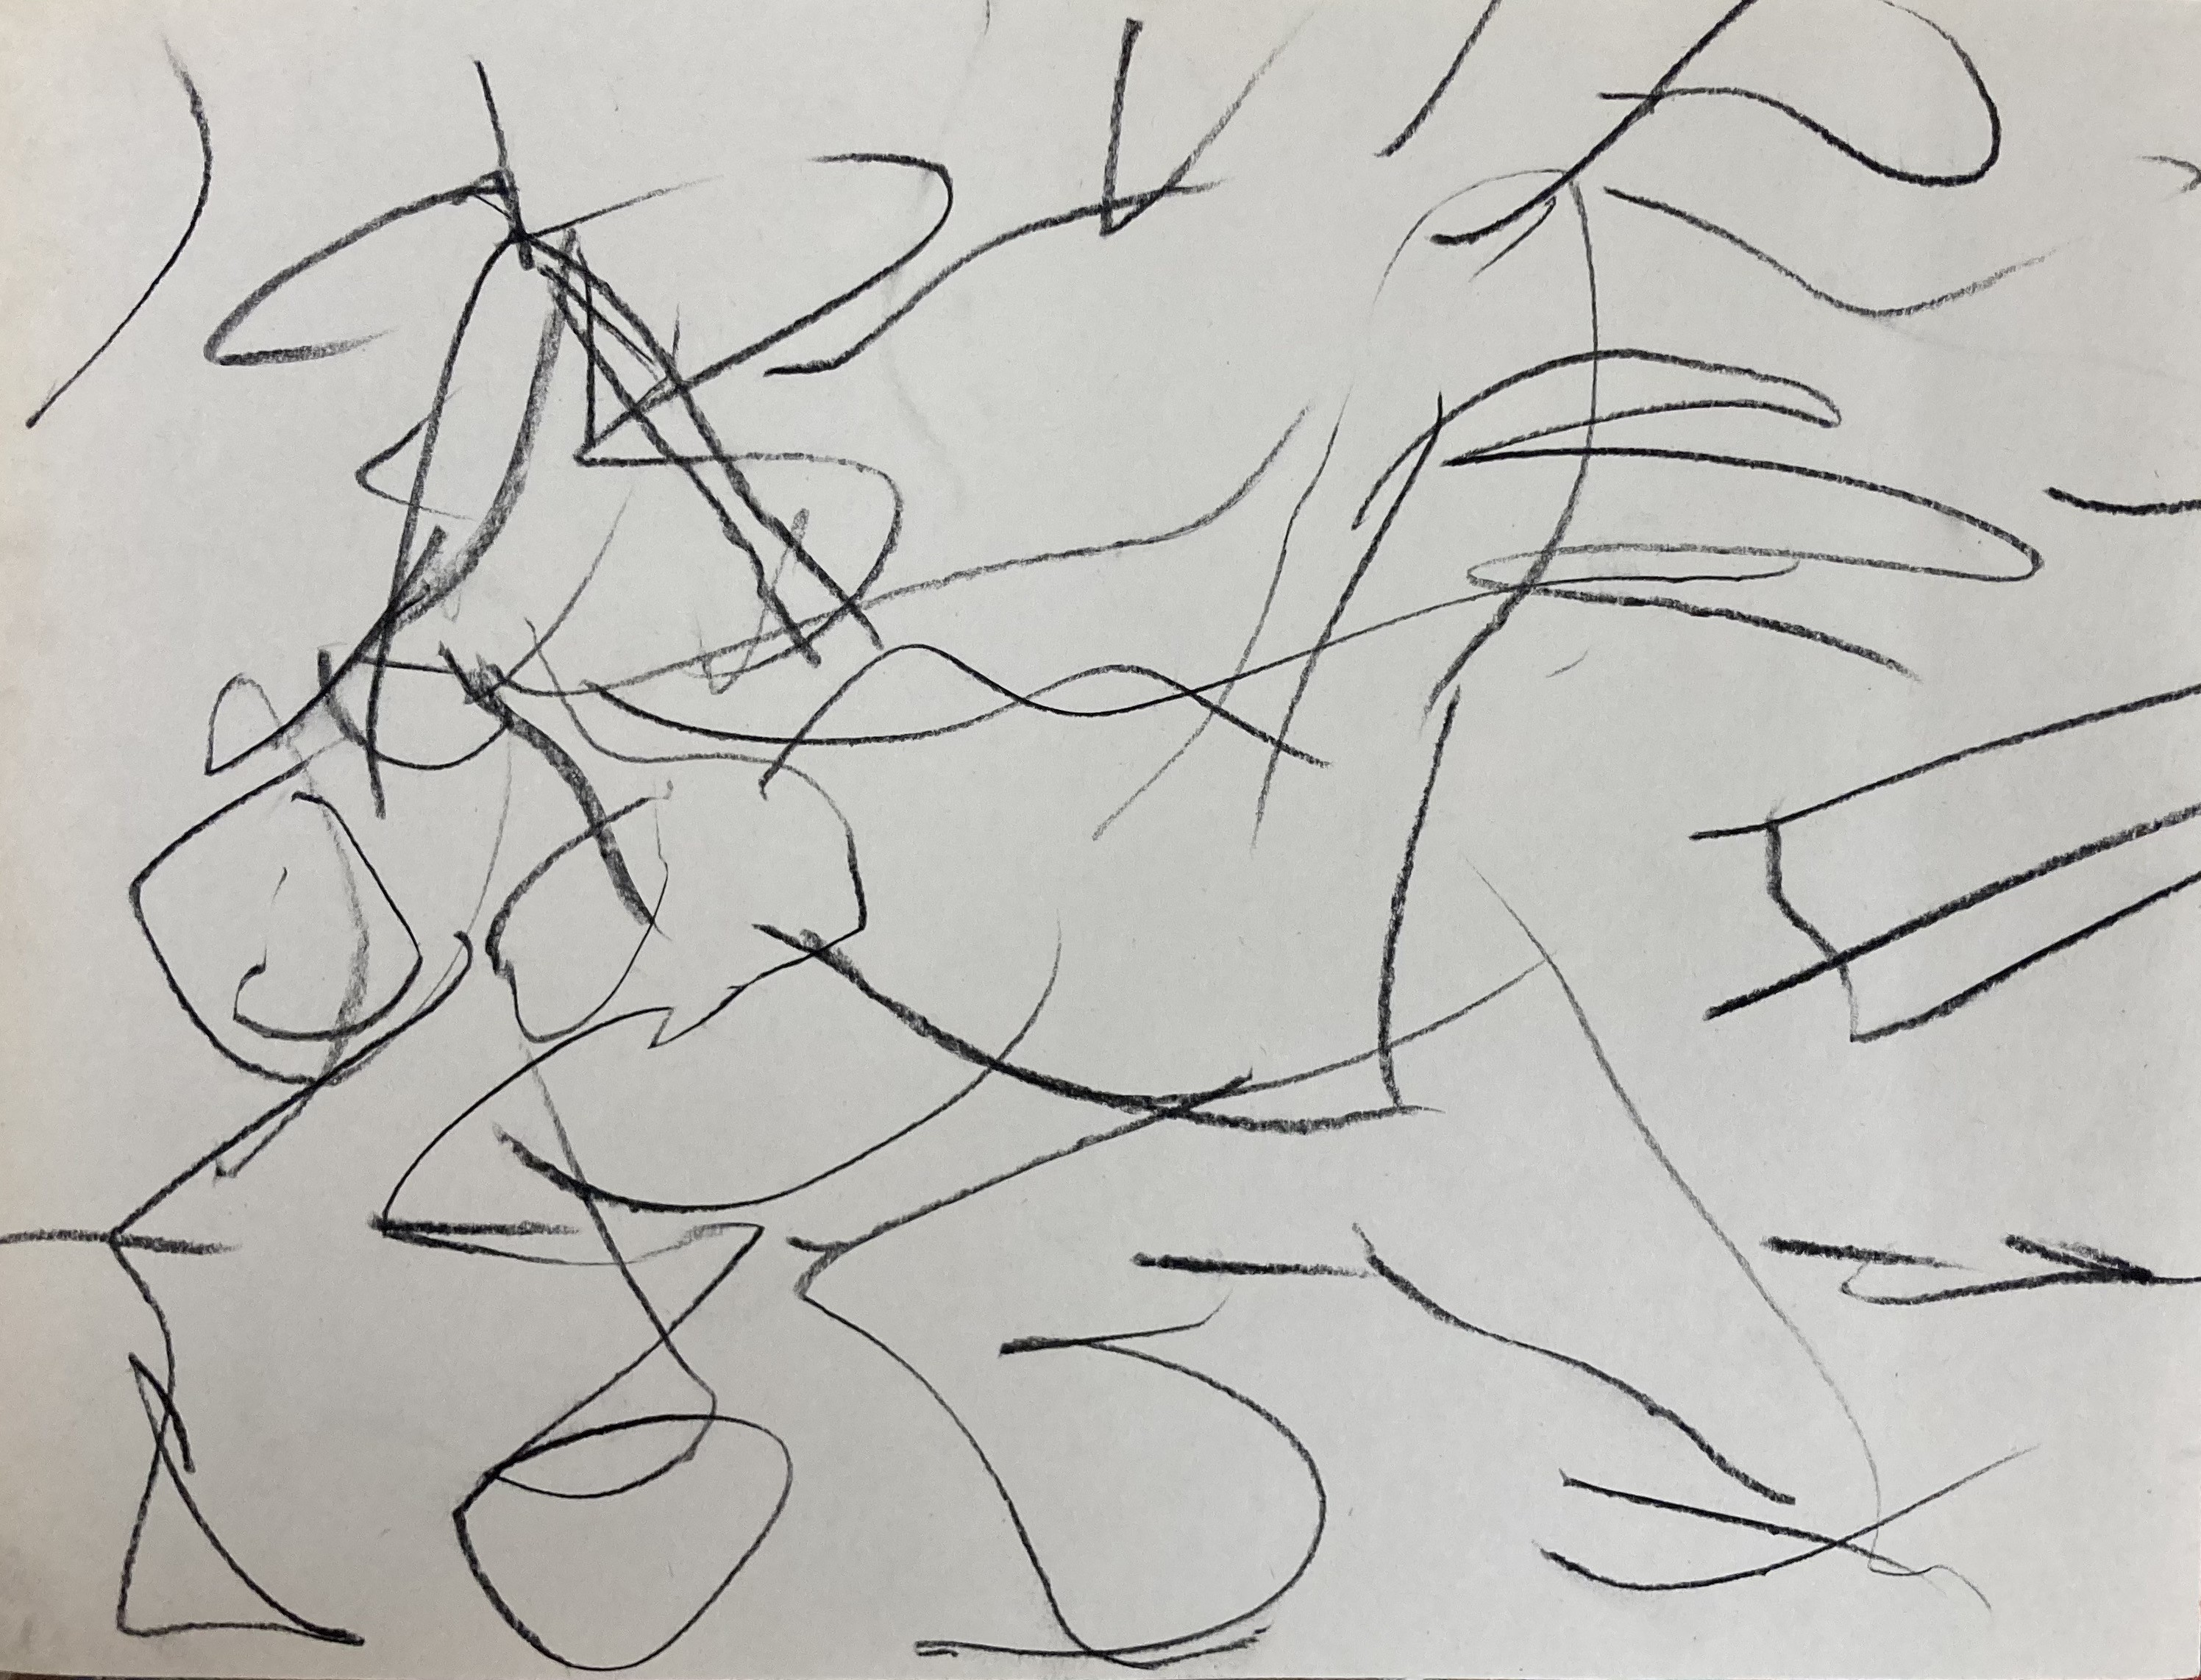 black charcoal lines making up an abstract horse drawing